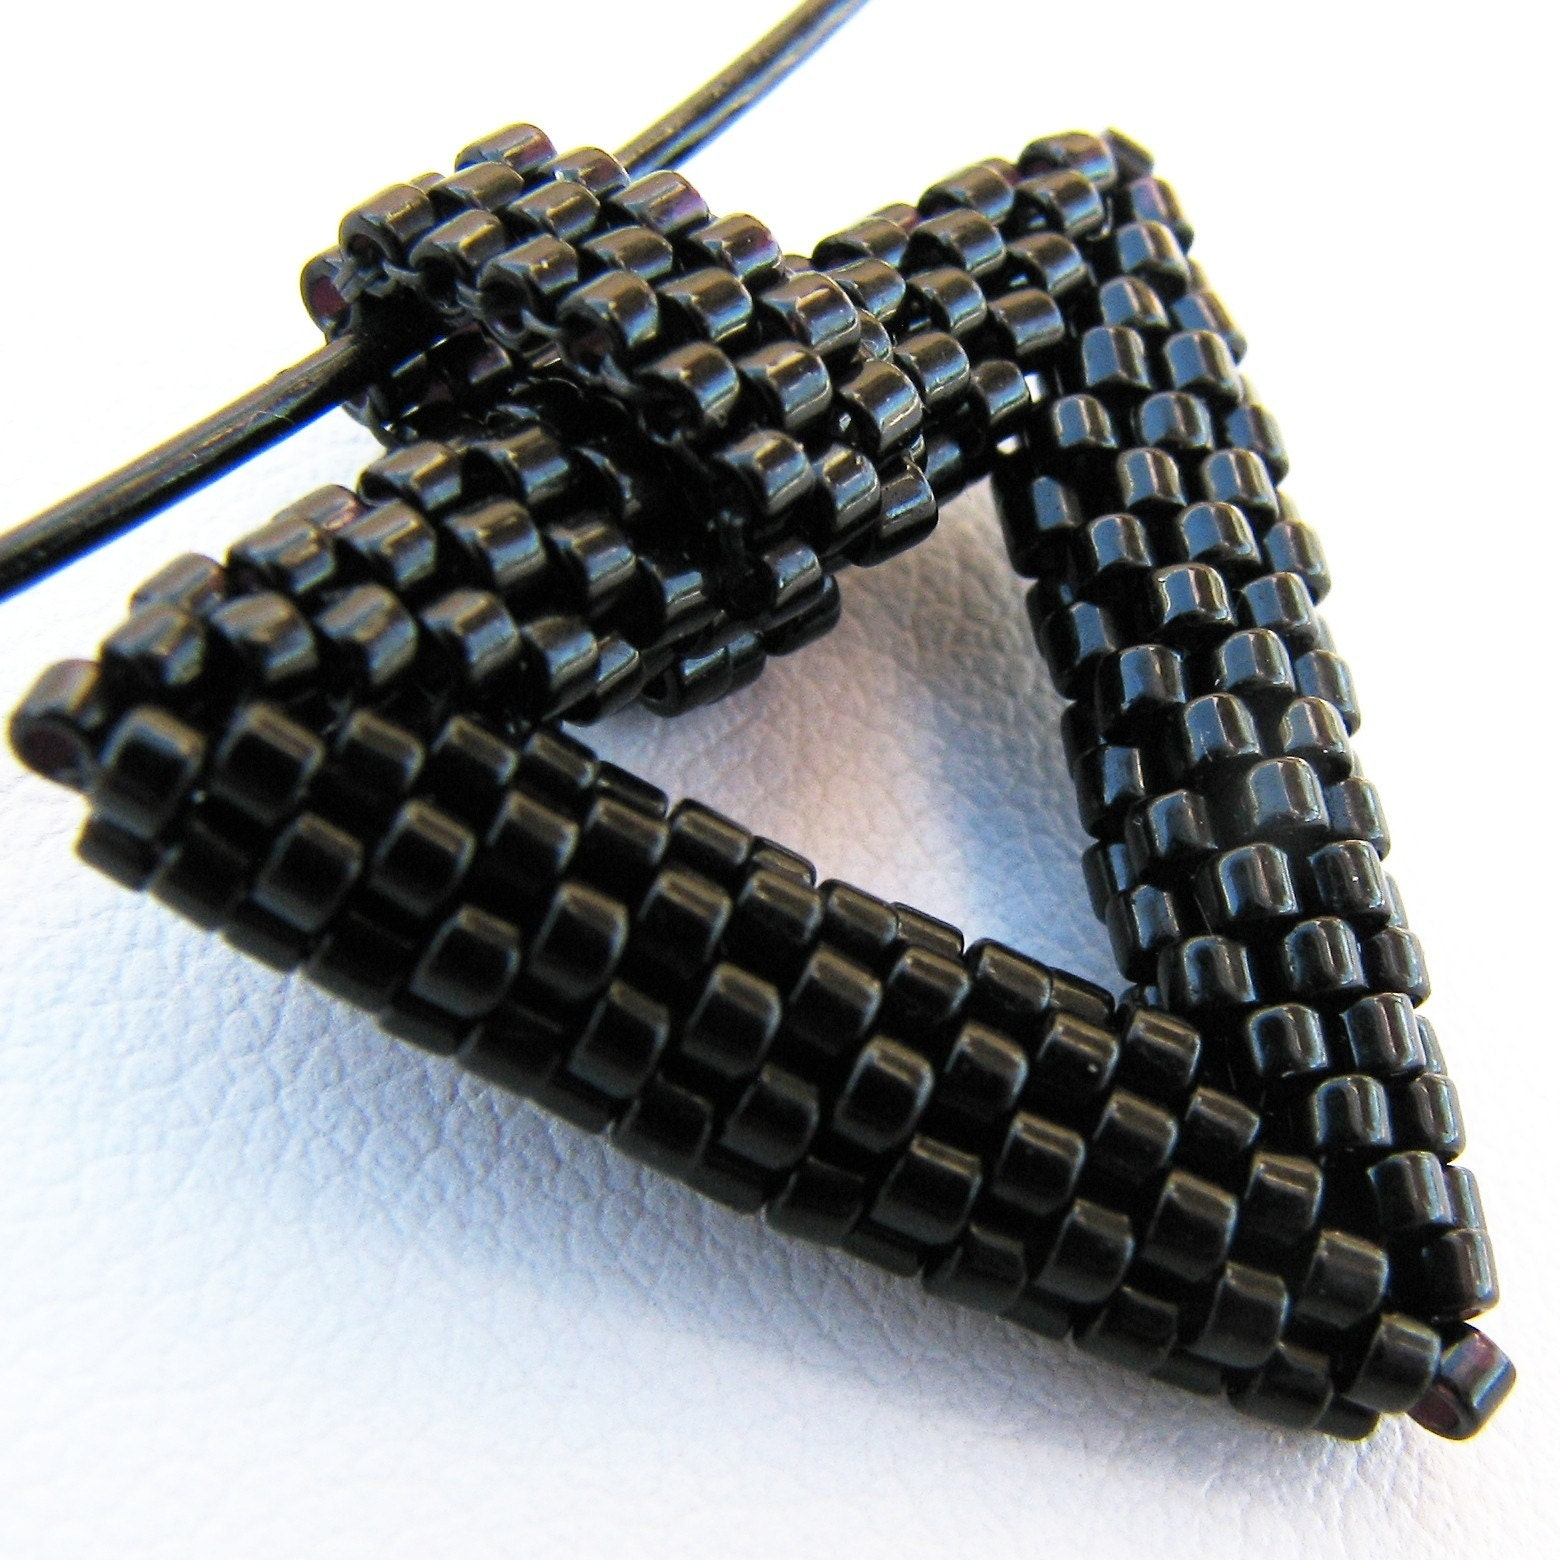 Triangle with Attitu(b)e in Black (2379)